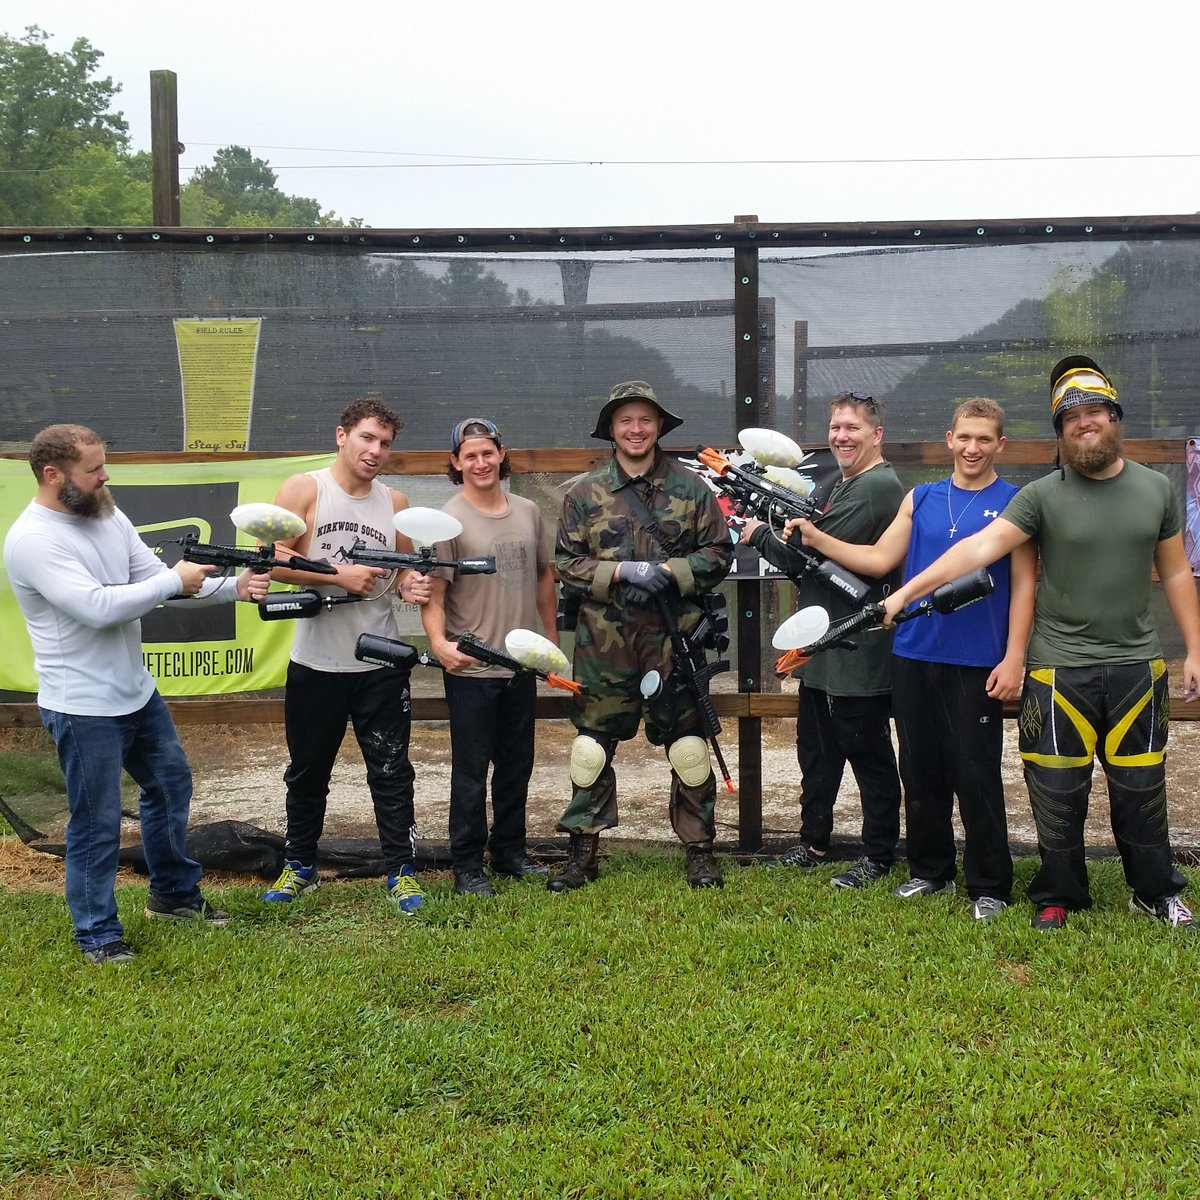 Finally. A part of the bachelor party you can tell your bride about.  With our proximity to the beaches, and breweries, Precision is your destination for paintball.   3 hour complete packages start at $30 per player.   #bachelorparty #paintball #precisionpaintball #throwback https://t.co/gBVxJPZP98